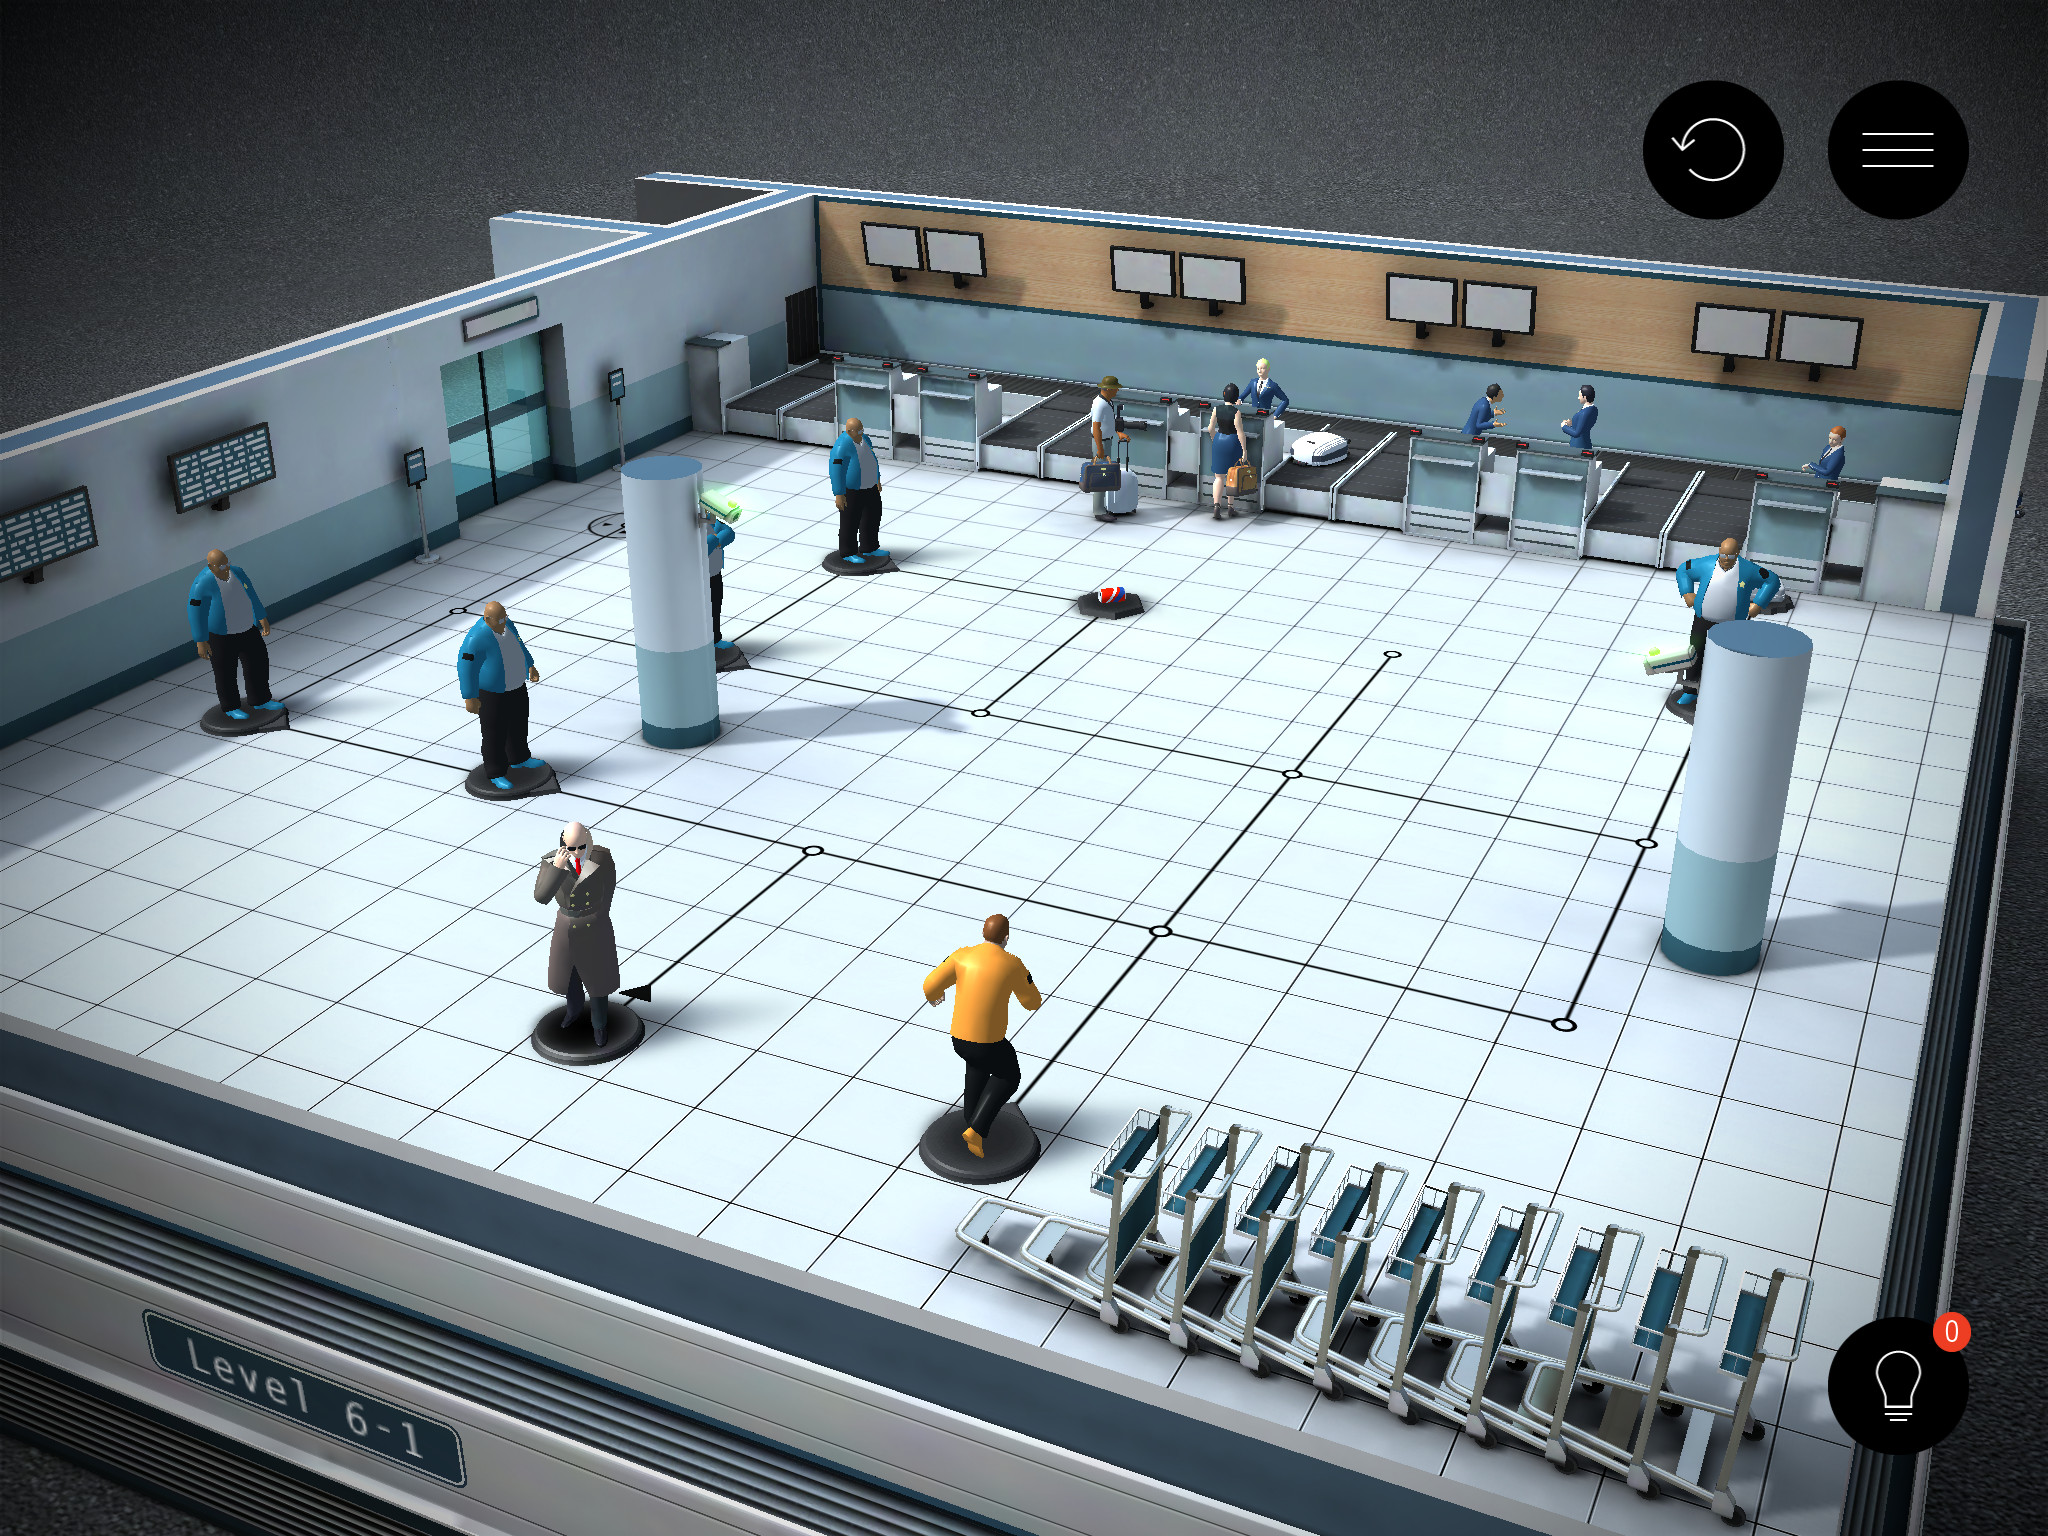 Hitman GO, Square Enix's Silver Award-winning twist on the assassin formula, has been updated with a new airport chapter for iPad and iPhone